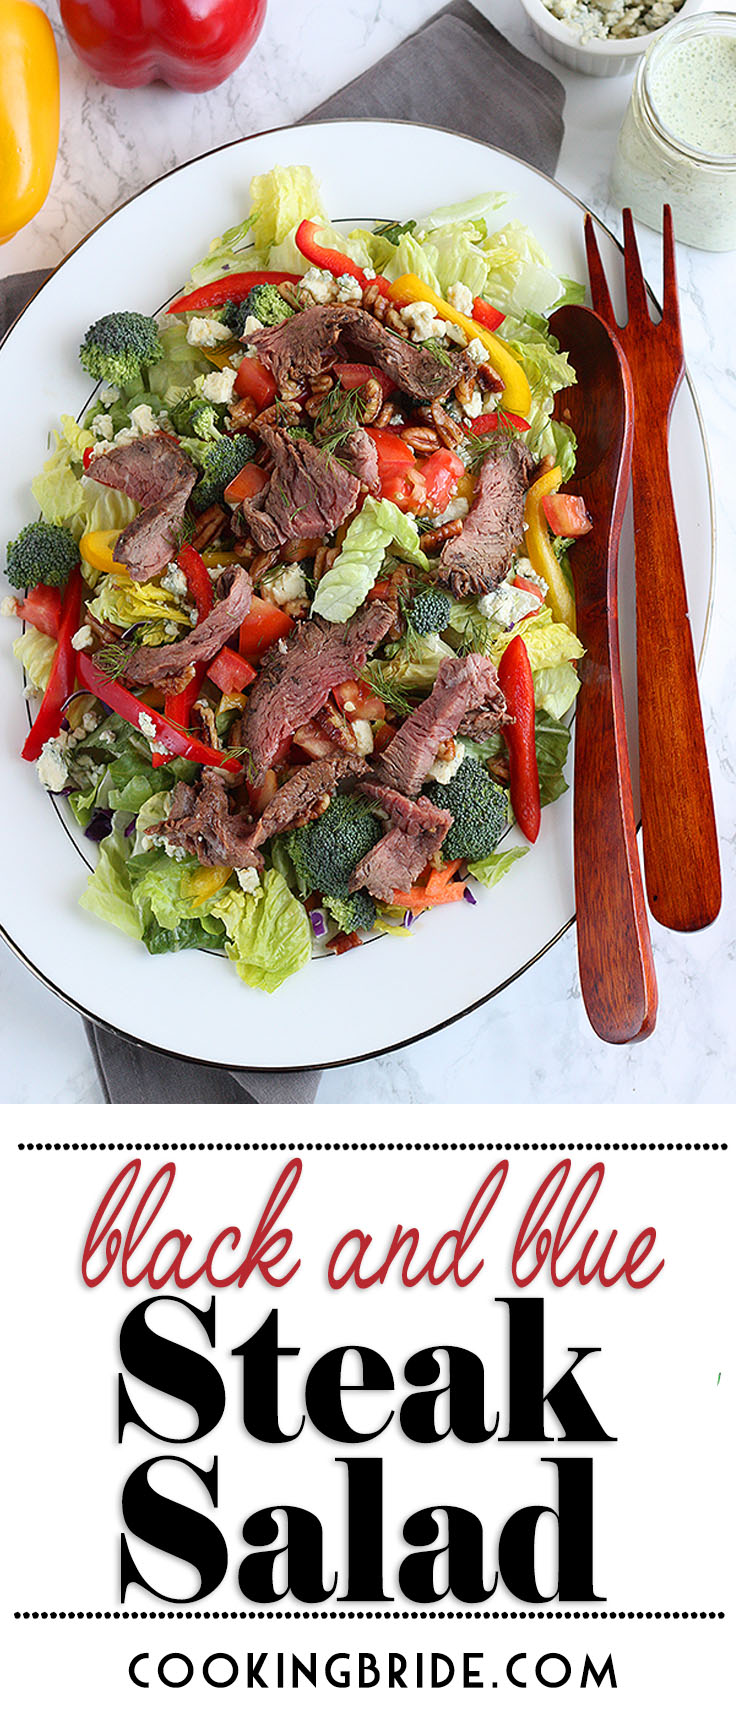 Black and blue steak salad is a healthy meal that satisfies, Crisp salad greens are loaded with crunchy vegetables, salty blue cheese, tomatoes and thinly sliced roast beef. Top everything with a cool and creamy herb dressing.